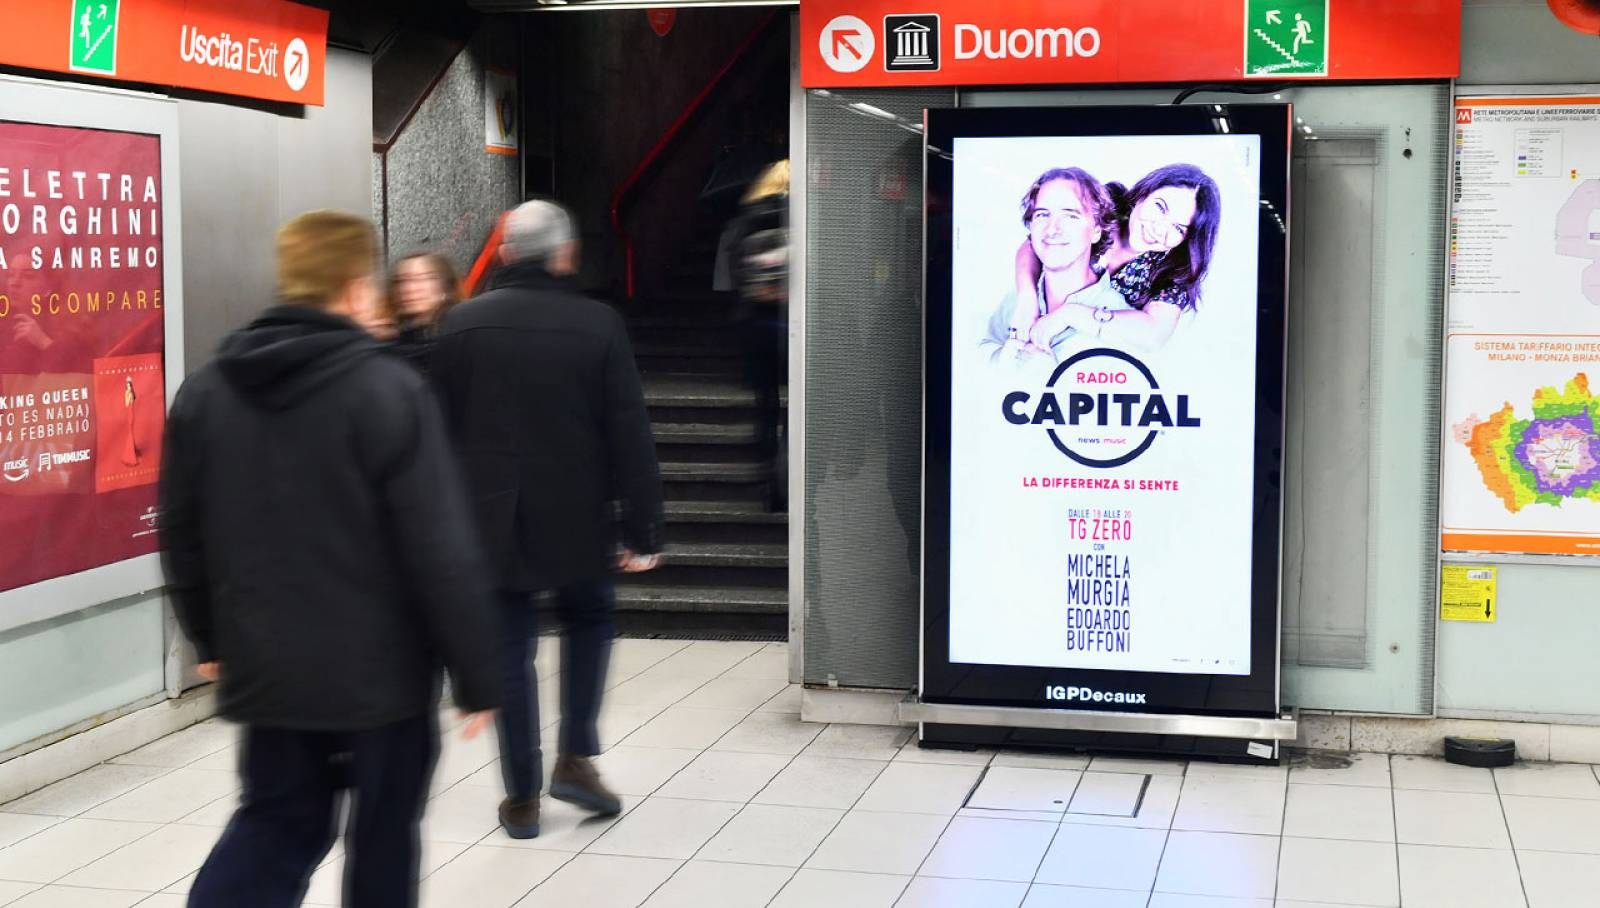 OOH advertising IGPDecaux in Milan Underground Vision Network for Radio Capital